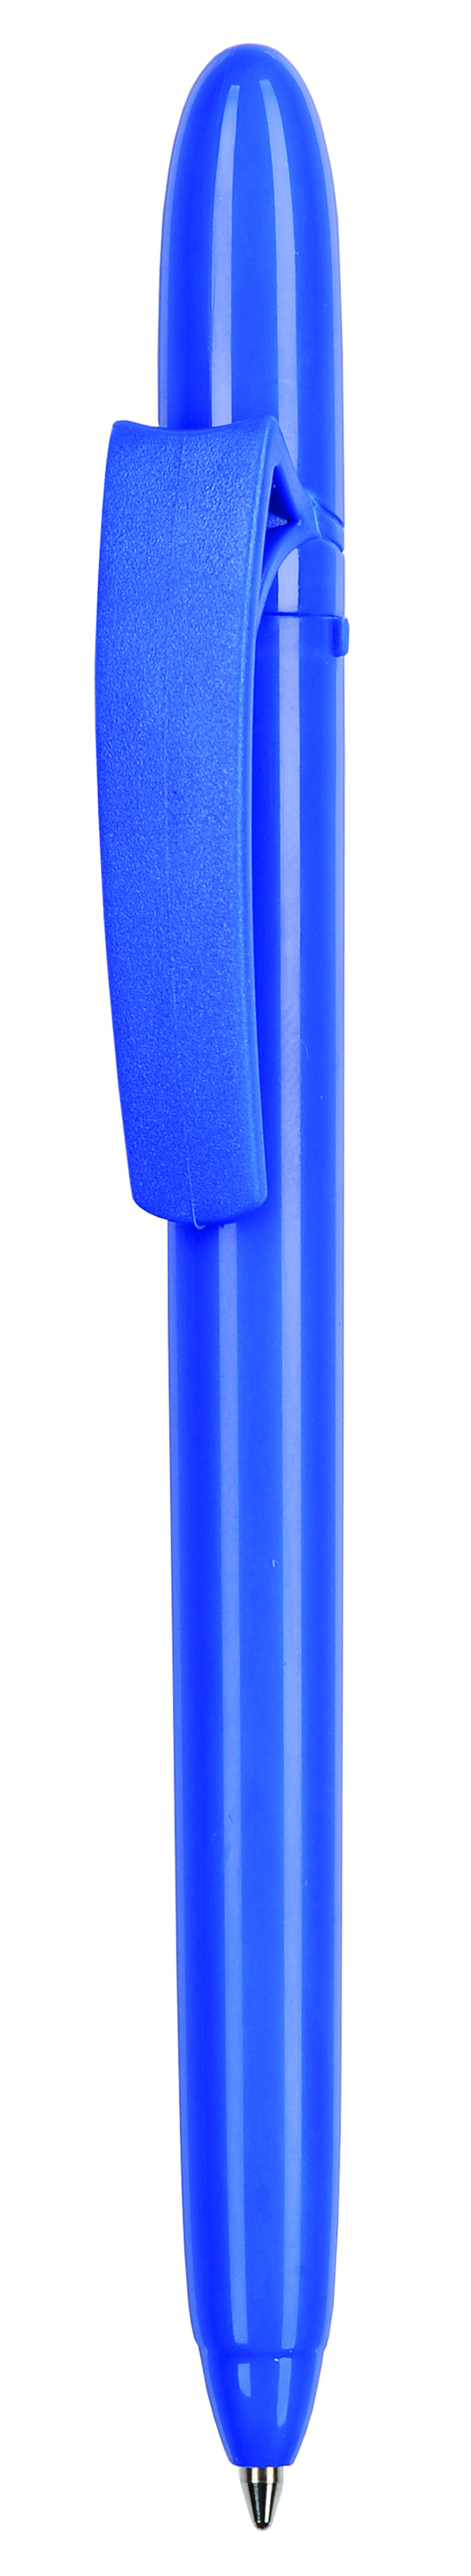 FILL_SOLID_blue_a